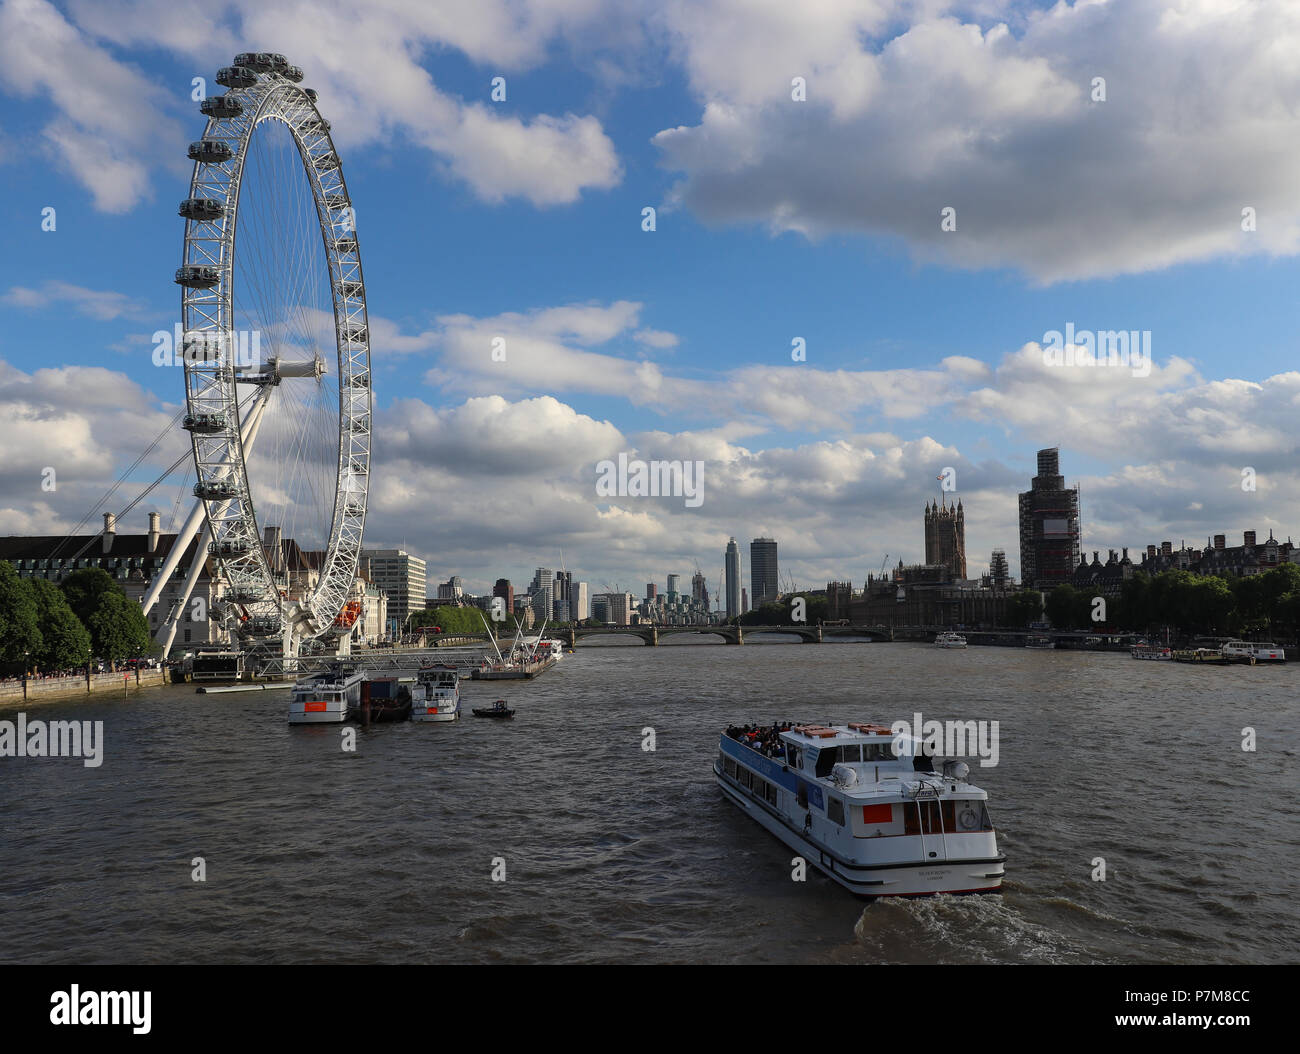 View down the River Thames of the London Eye and Houses of Parliament with scaffolding from the Hungerford Bridge; blue sky filled with white clouds - Stock Image